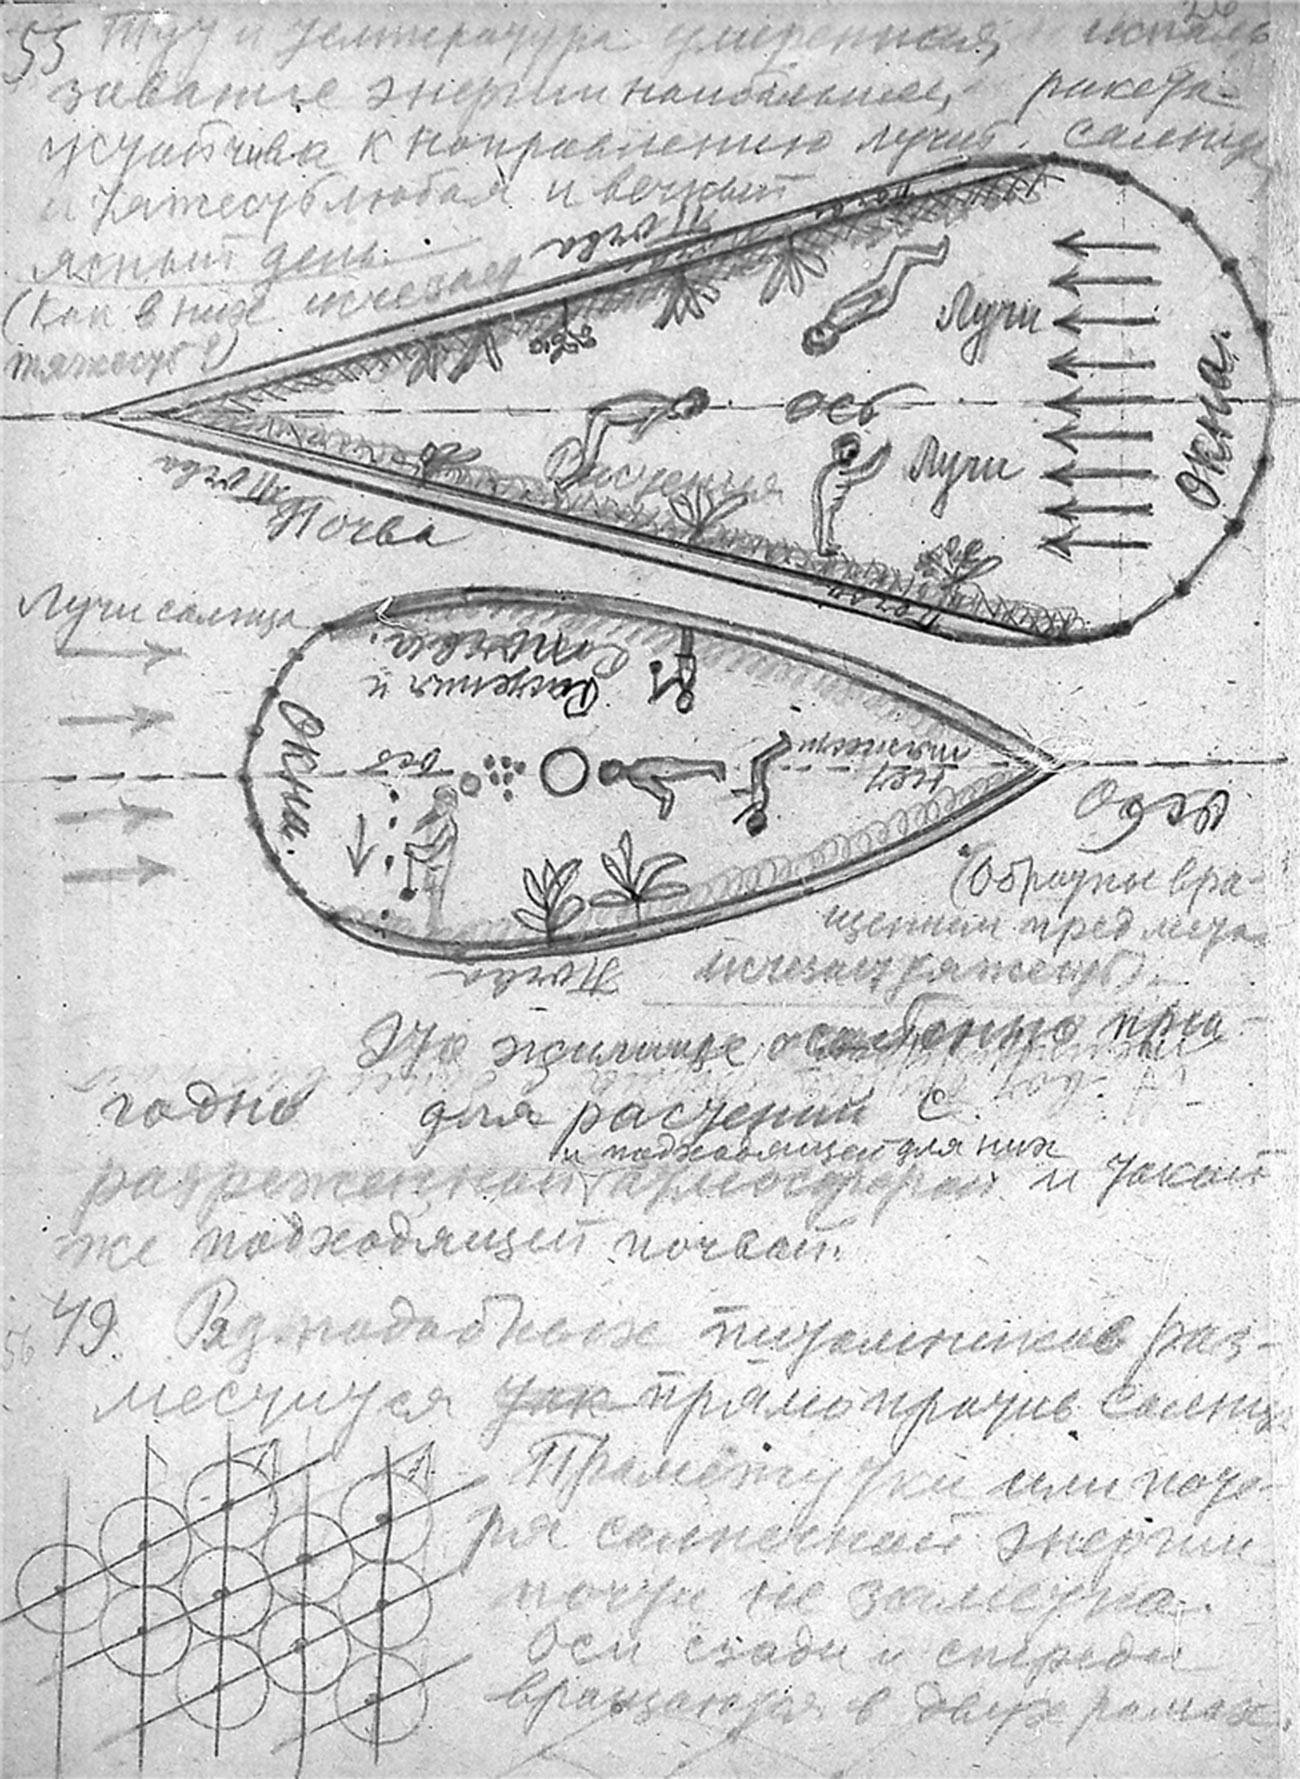 Tsiolkovsky's description and drawing of a spaceship greenhouse